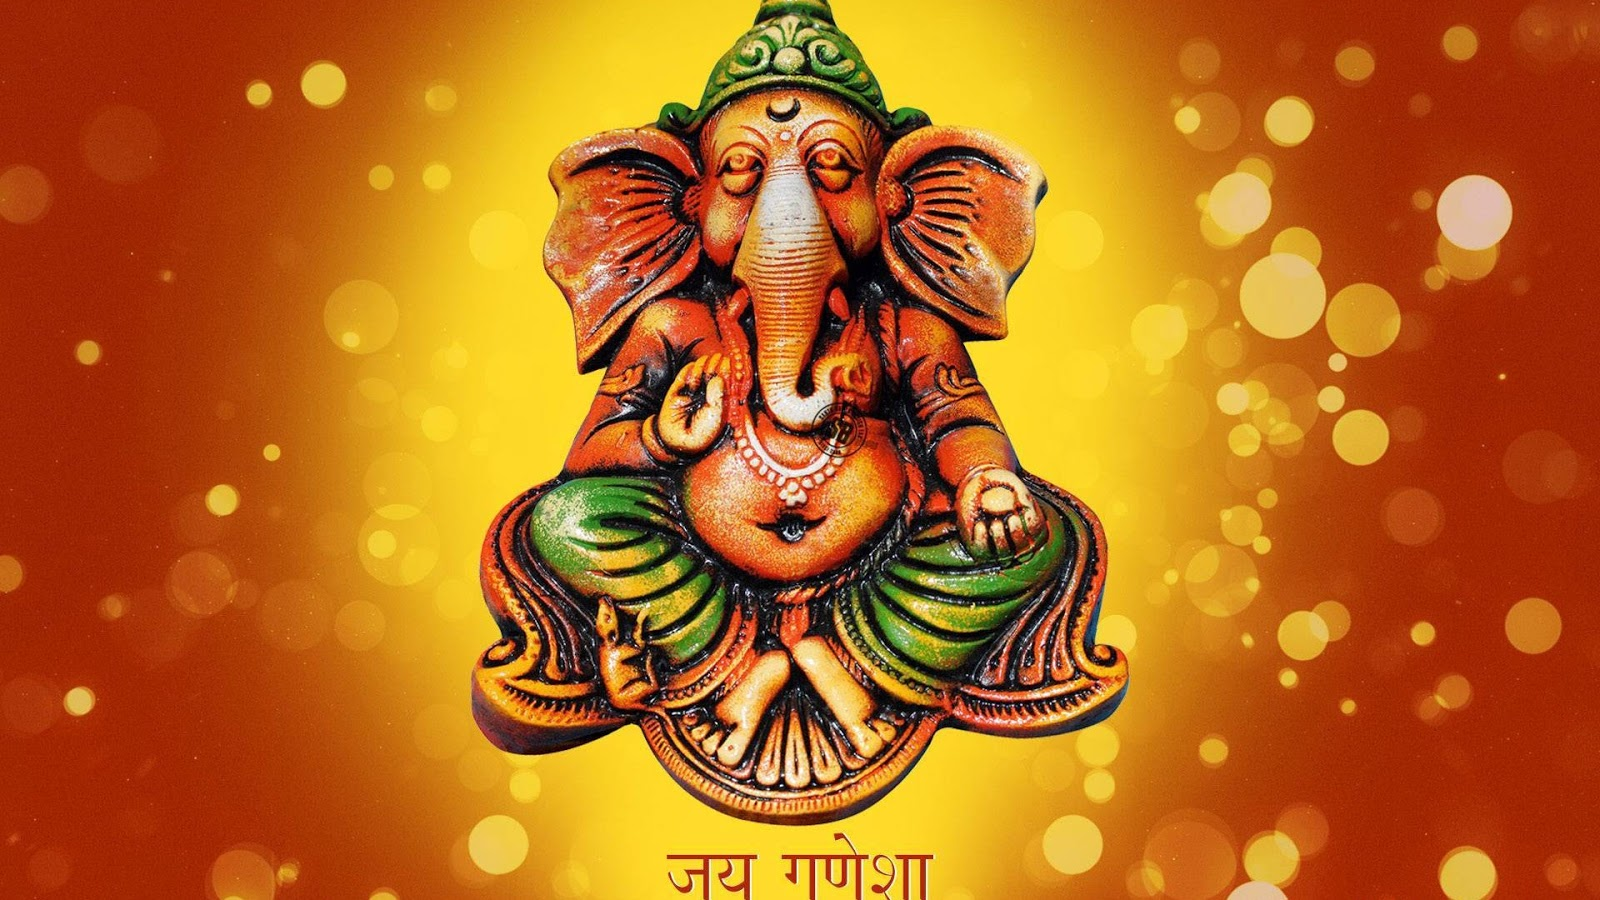 Baby ganesh images hd 1080p 2017 for desktop happy diwali 2017 greetings wishes images sms - Sri ganesh wallpaper hd ...